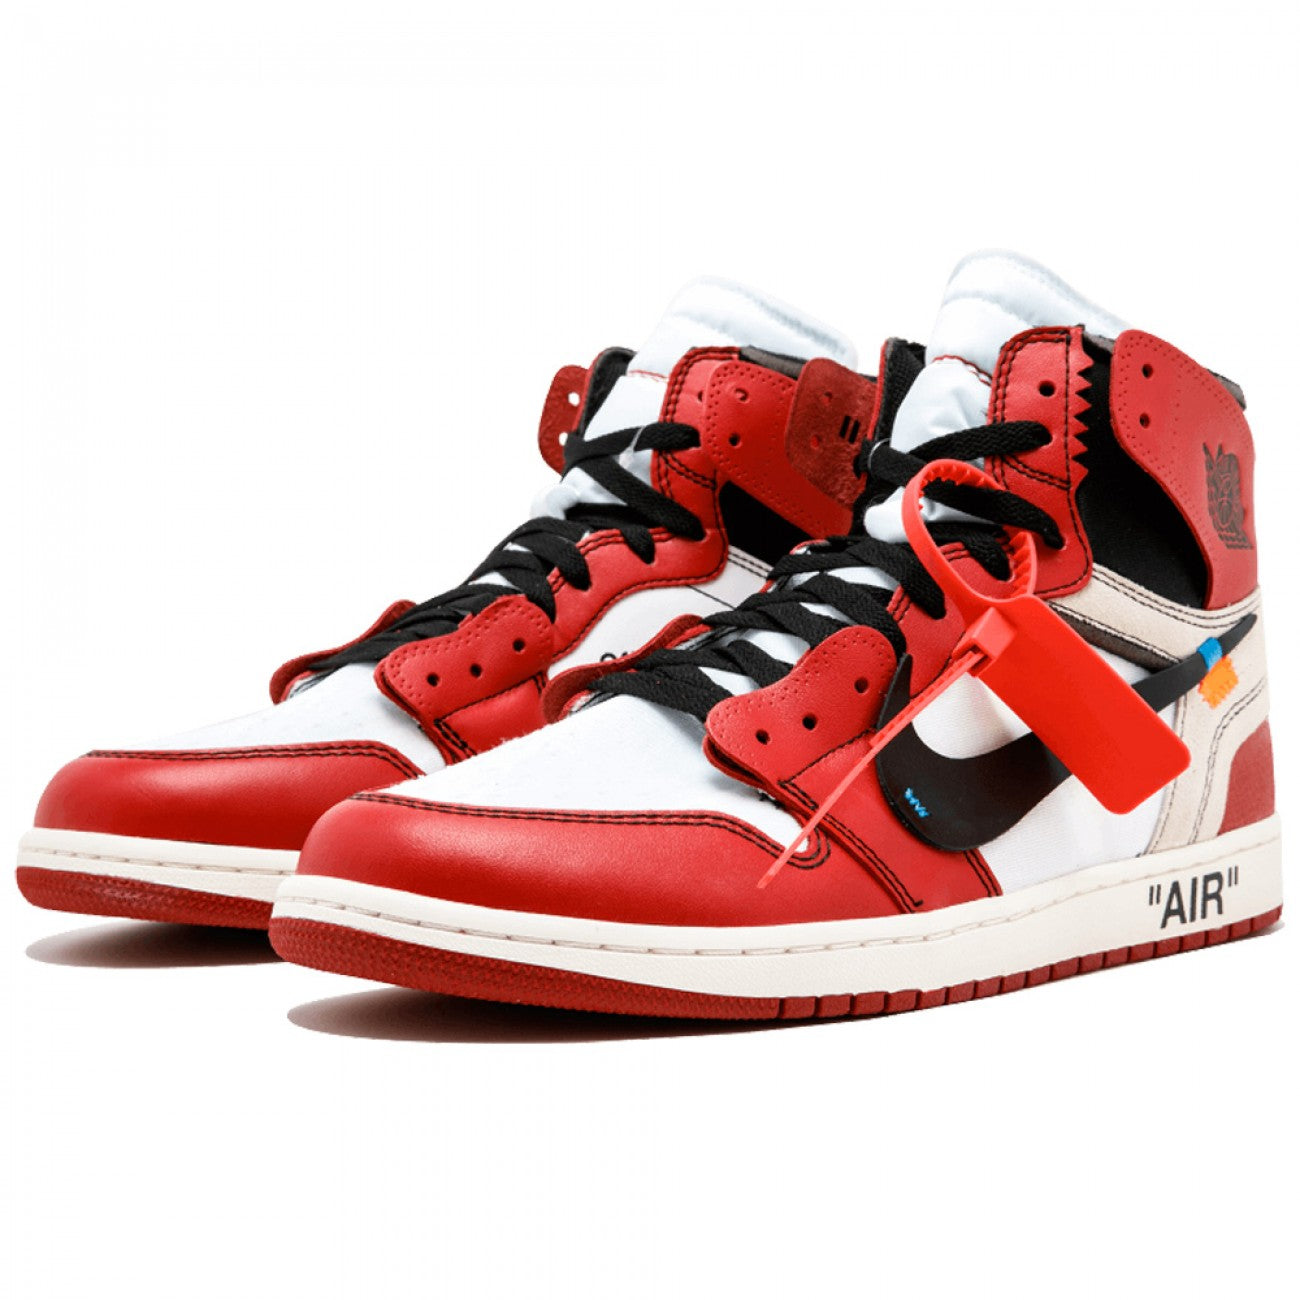 042255ce0bb5b OFF-WHITE X NIKE AIR JORDAN 1 – CREED.